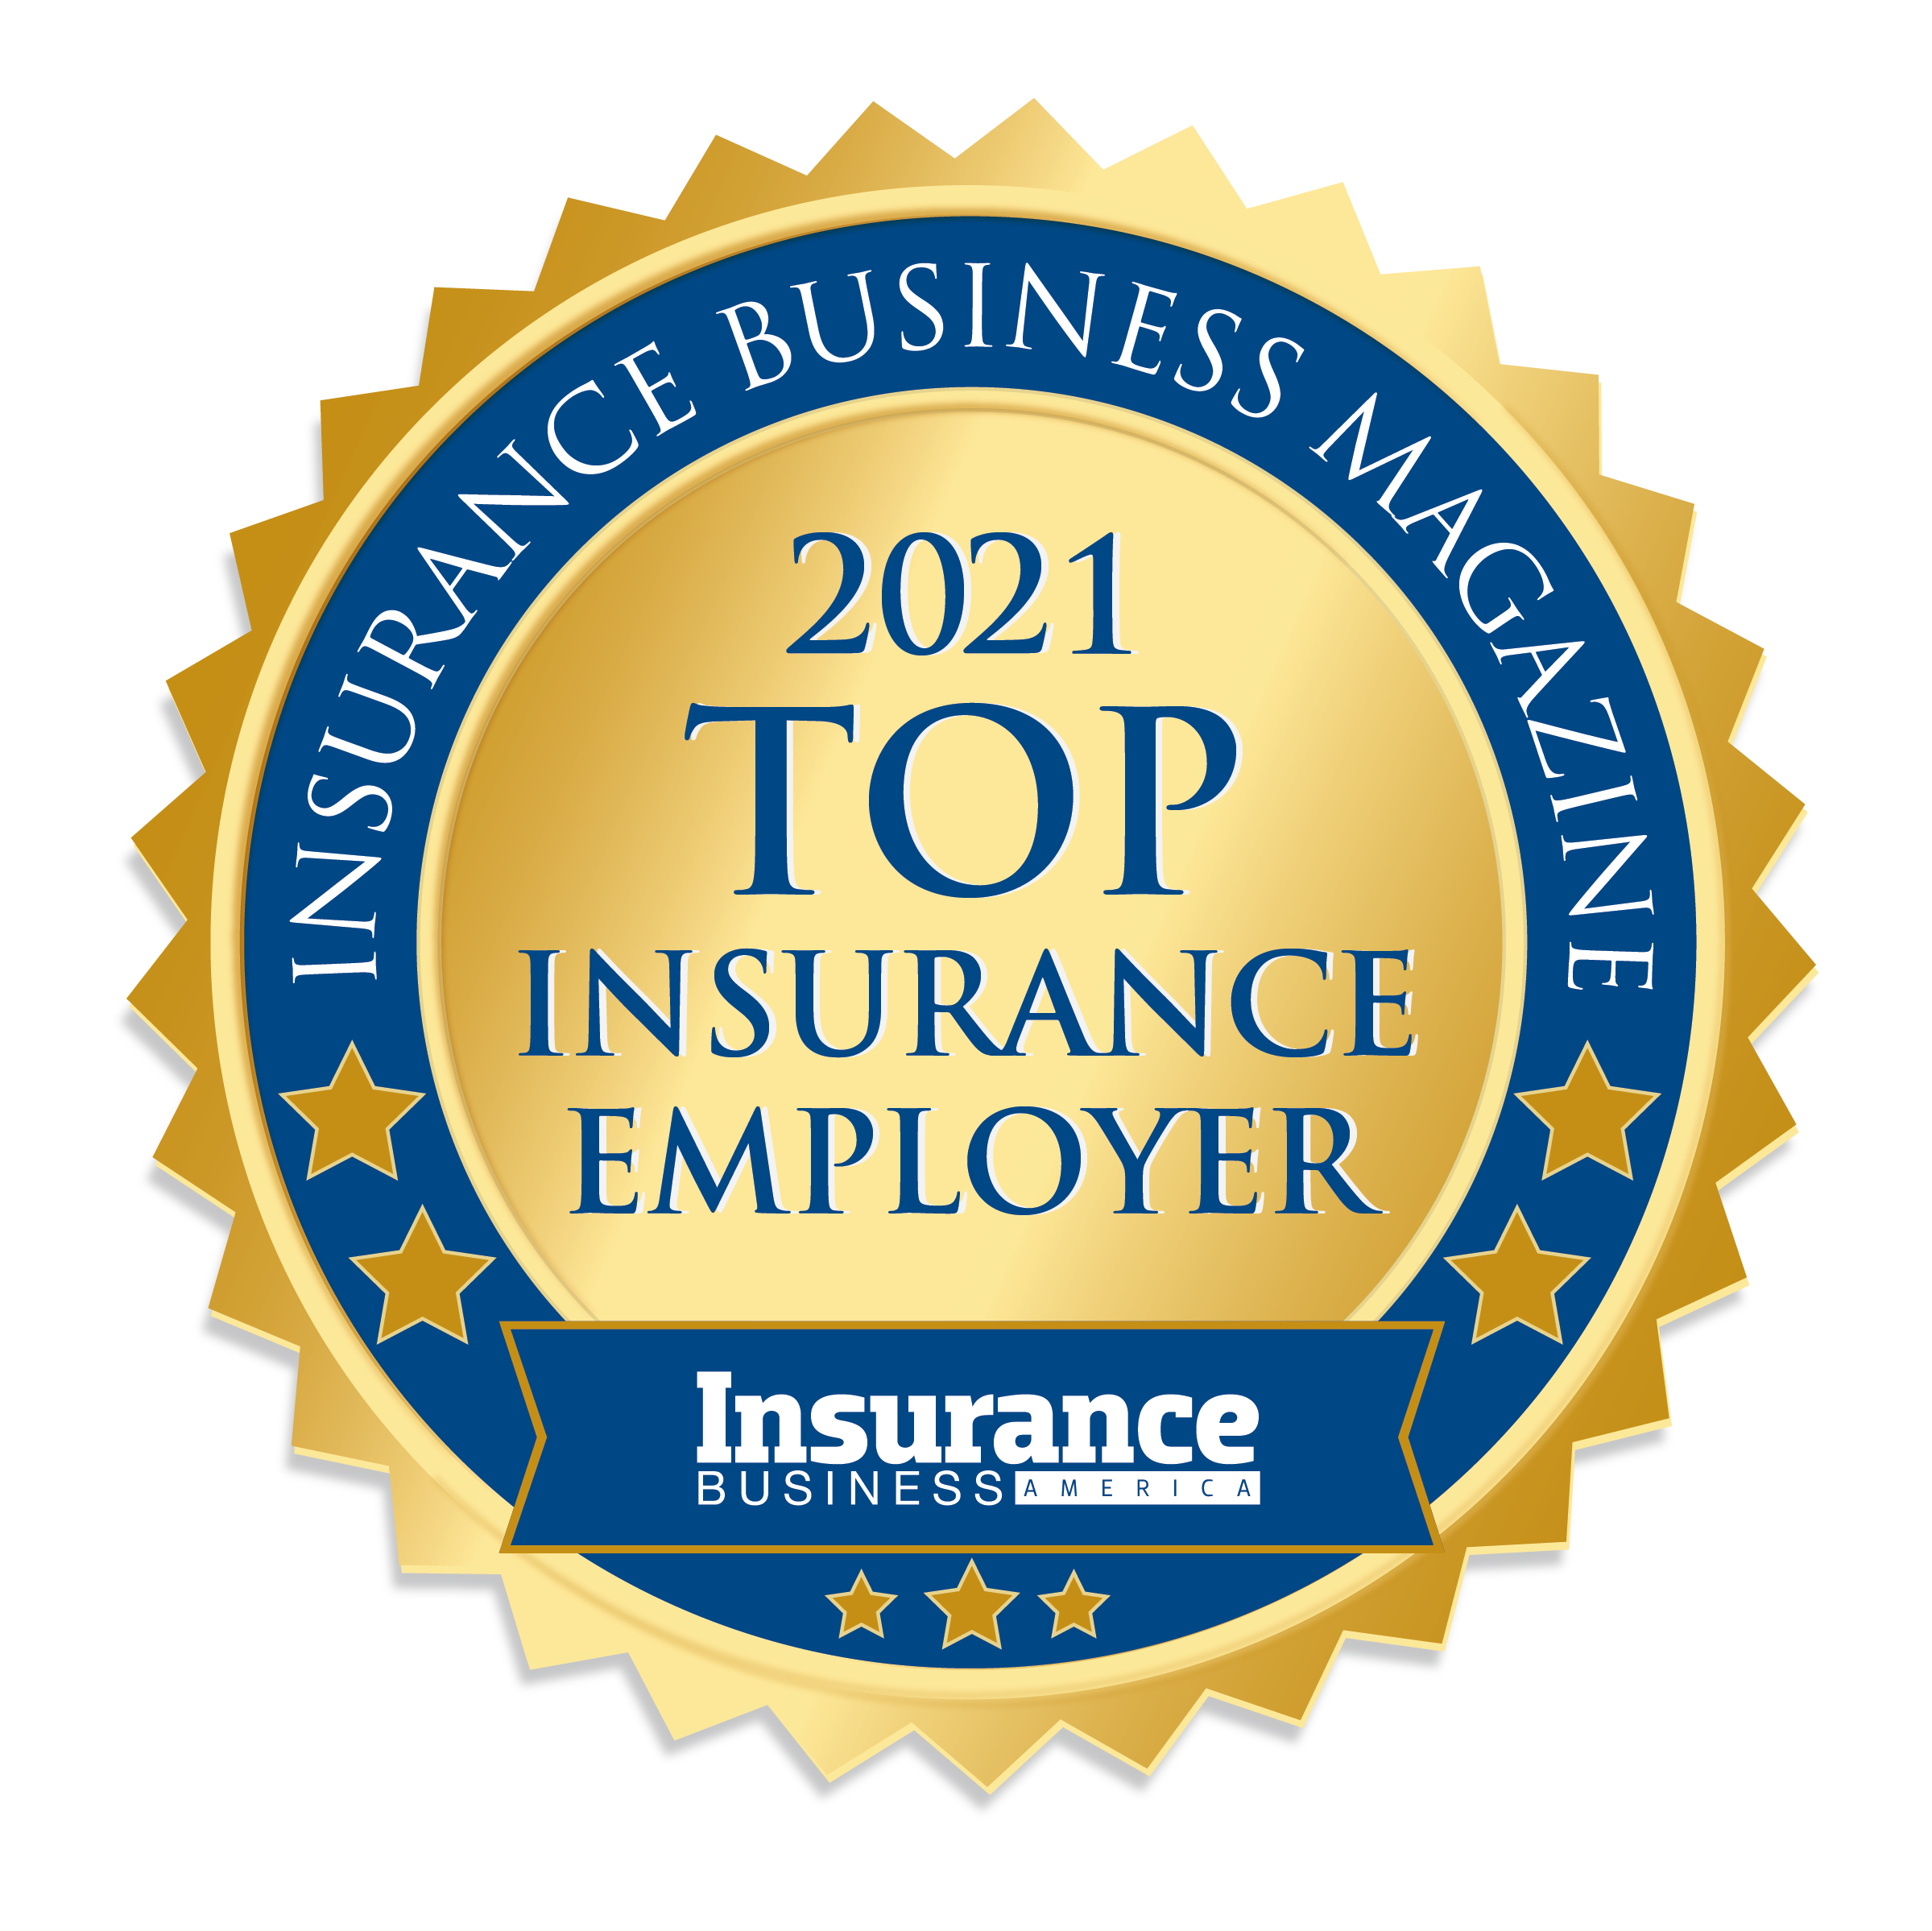 MEDAL Top Insurance Employers 2021